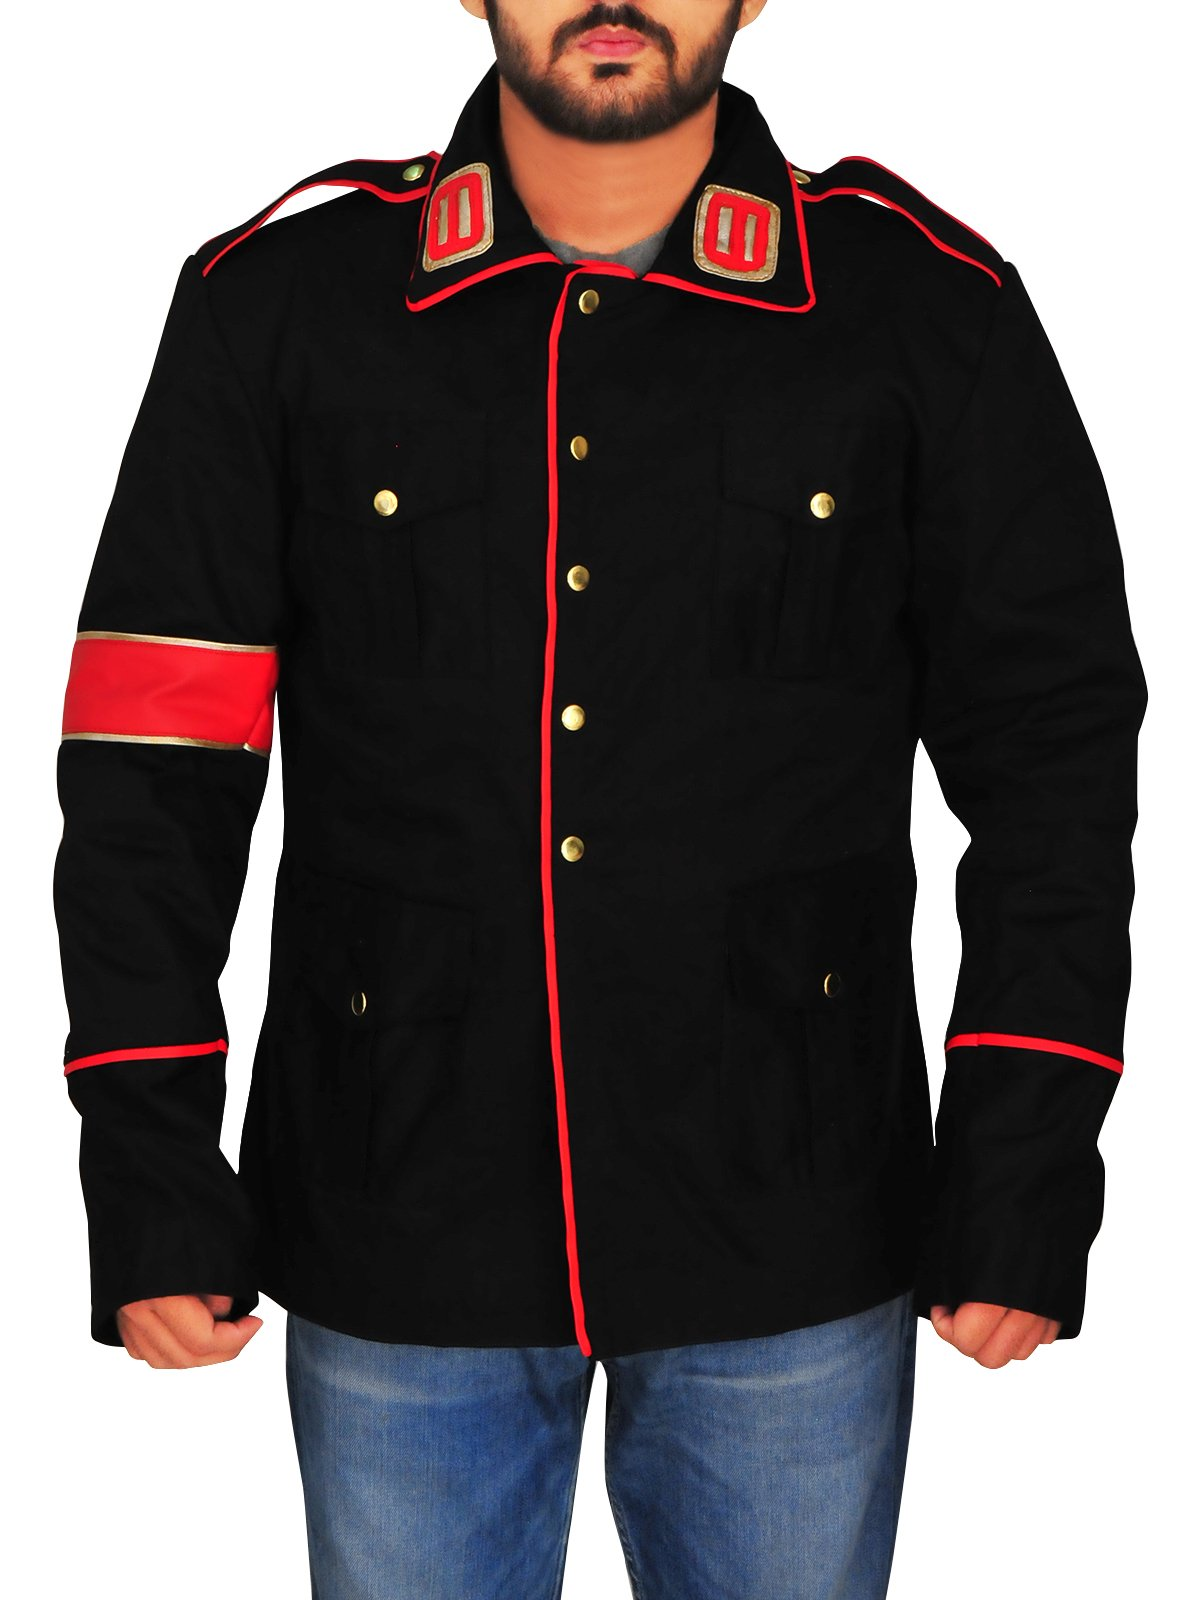 Michael Jackson Jacket, Jacket for men